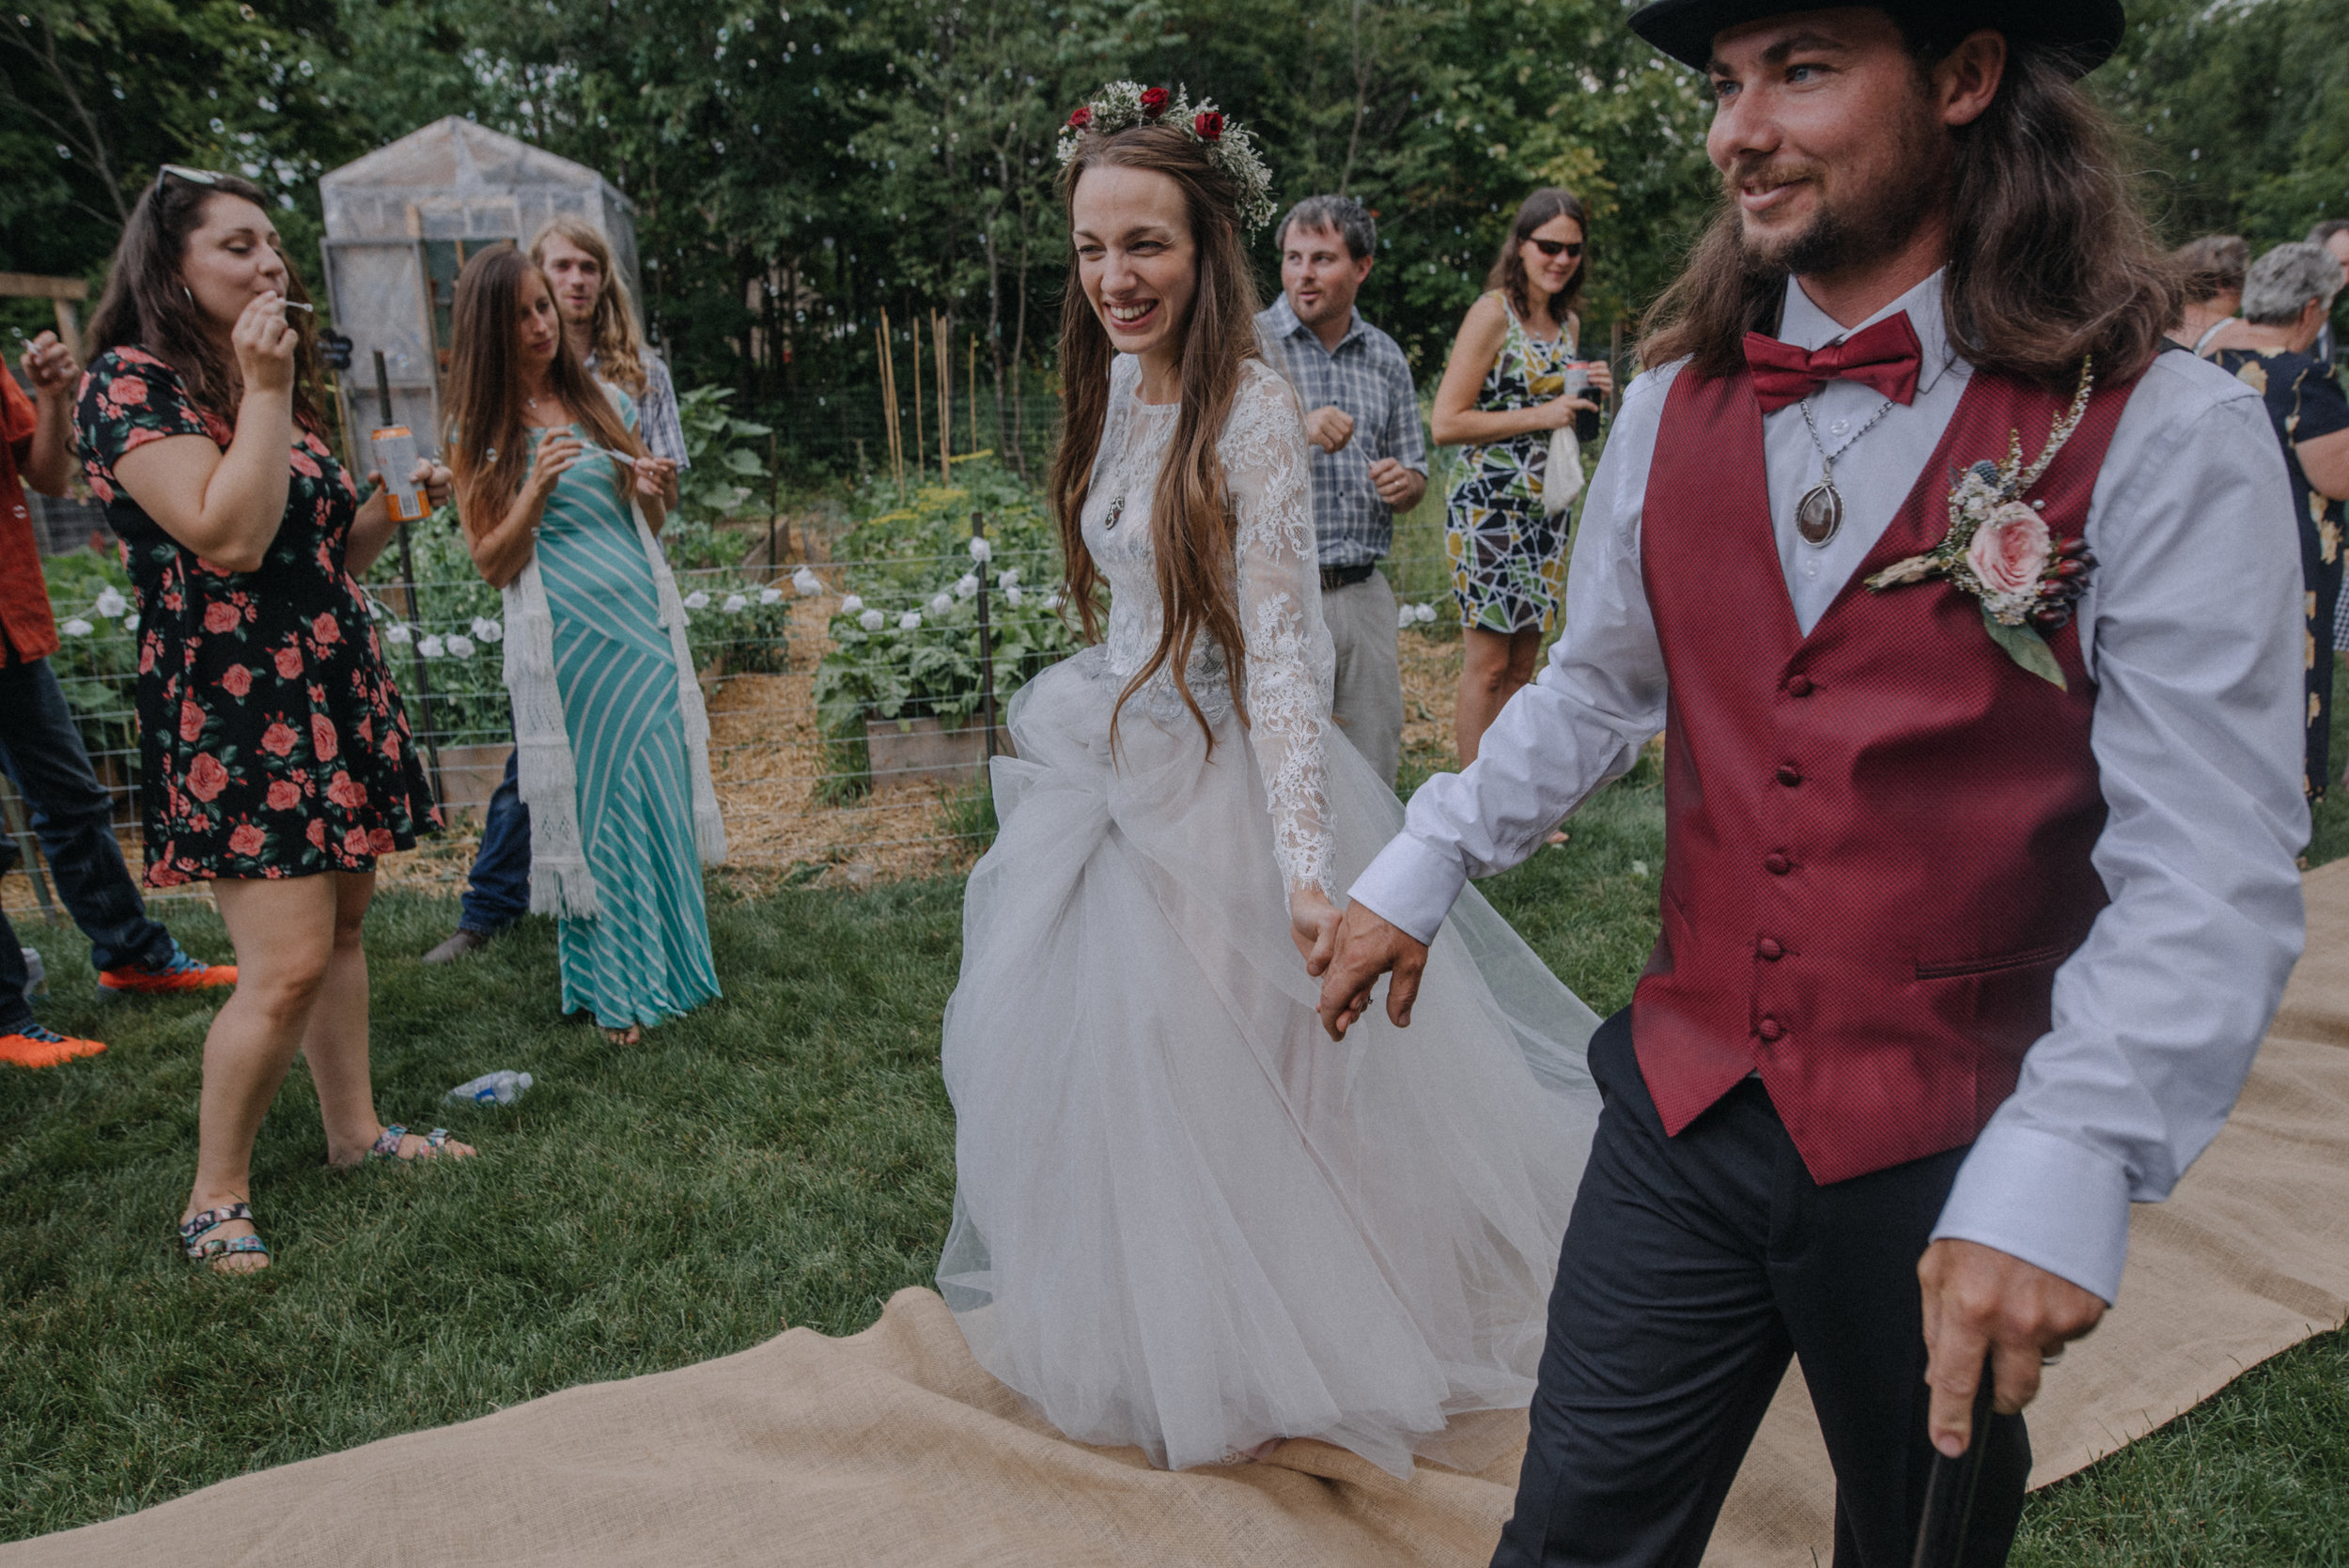 ottawa_wedding_photographer_gatineau_photographe_mariage_documentary_candid_photojournalist_natural_raw_boho_wedding_backyard (24).JPG